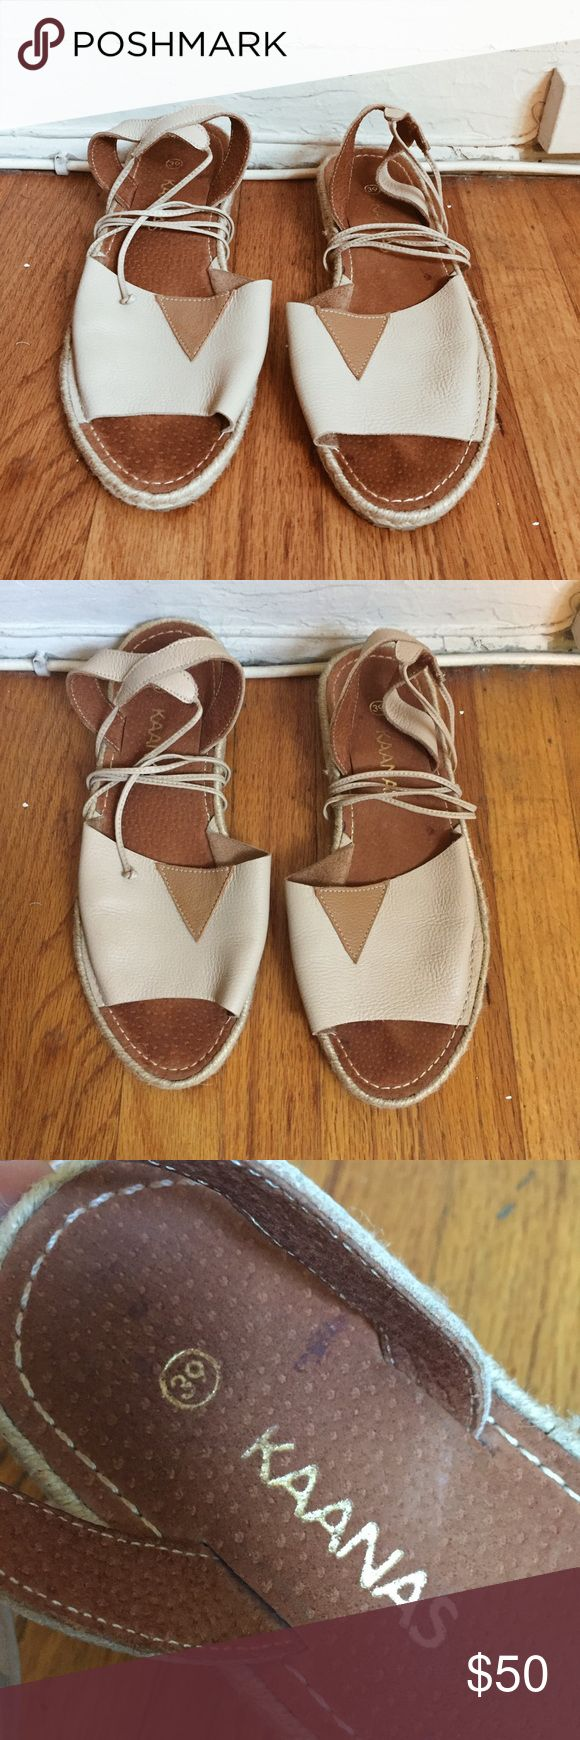 Leather Lace Up Nude Espadrille Sandals Not free people, just put for exposure. Brand new, lightly worn. Great condition. Ropes wrap about twice. Very comfortable, soft leather. Super feminine. Pinkish nude color Free People Shoes Espadrilles